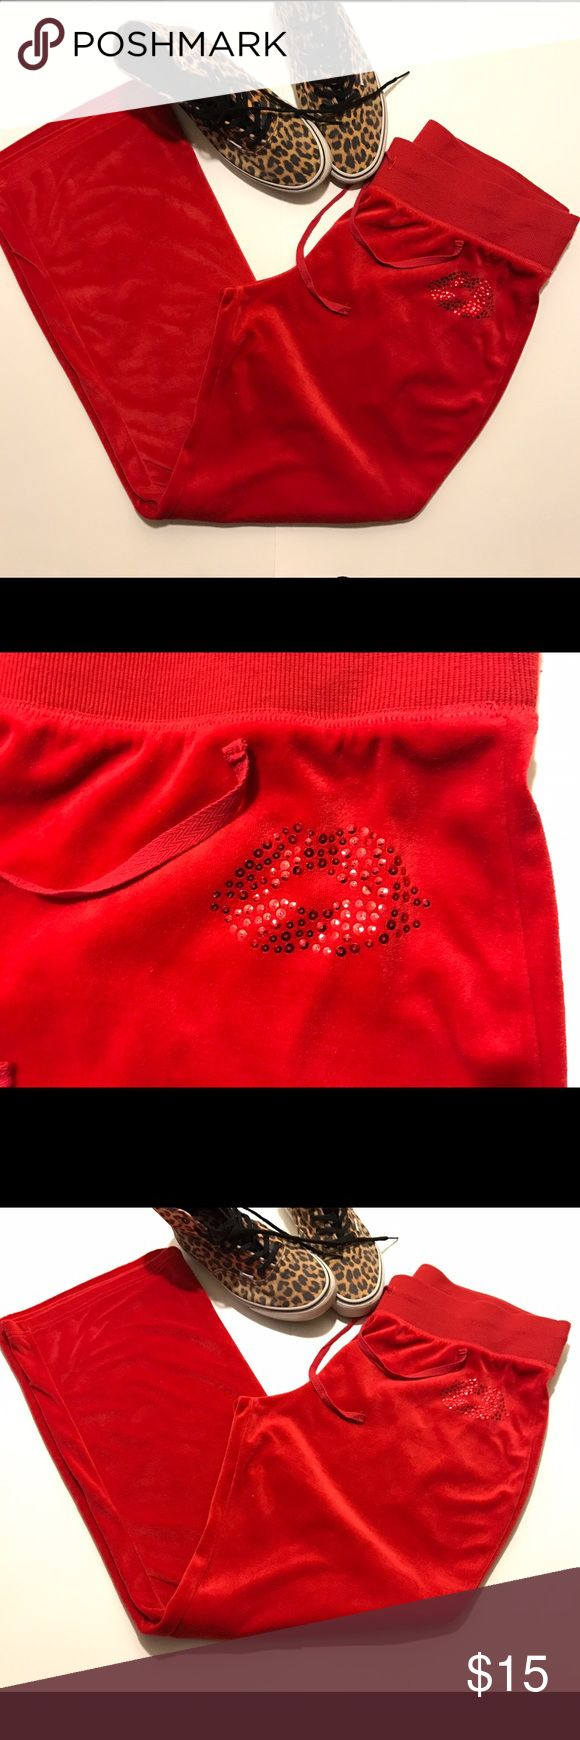 """💘Soft Velour Comfy Couture Like Pants💋😍 💋😘Soft Velour Comfy JCouture Like Pants in  a """"Vibrant Candy 🍎 Red 😍""""! Brand is NO BOUNDARIES w/ small sparkly Sequin designed Lips on the hip. SIZE XL a true 15-16 So these are too big for me cause I like to show my curves 😜lol. But whether it's form fitting or loose these are the most comfiest pants ever to me! 😍❤️ No Boundaries Pants Track Pants & Joggers"""